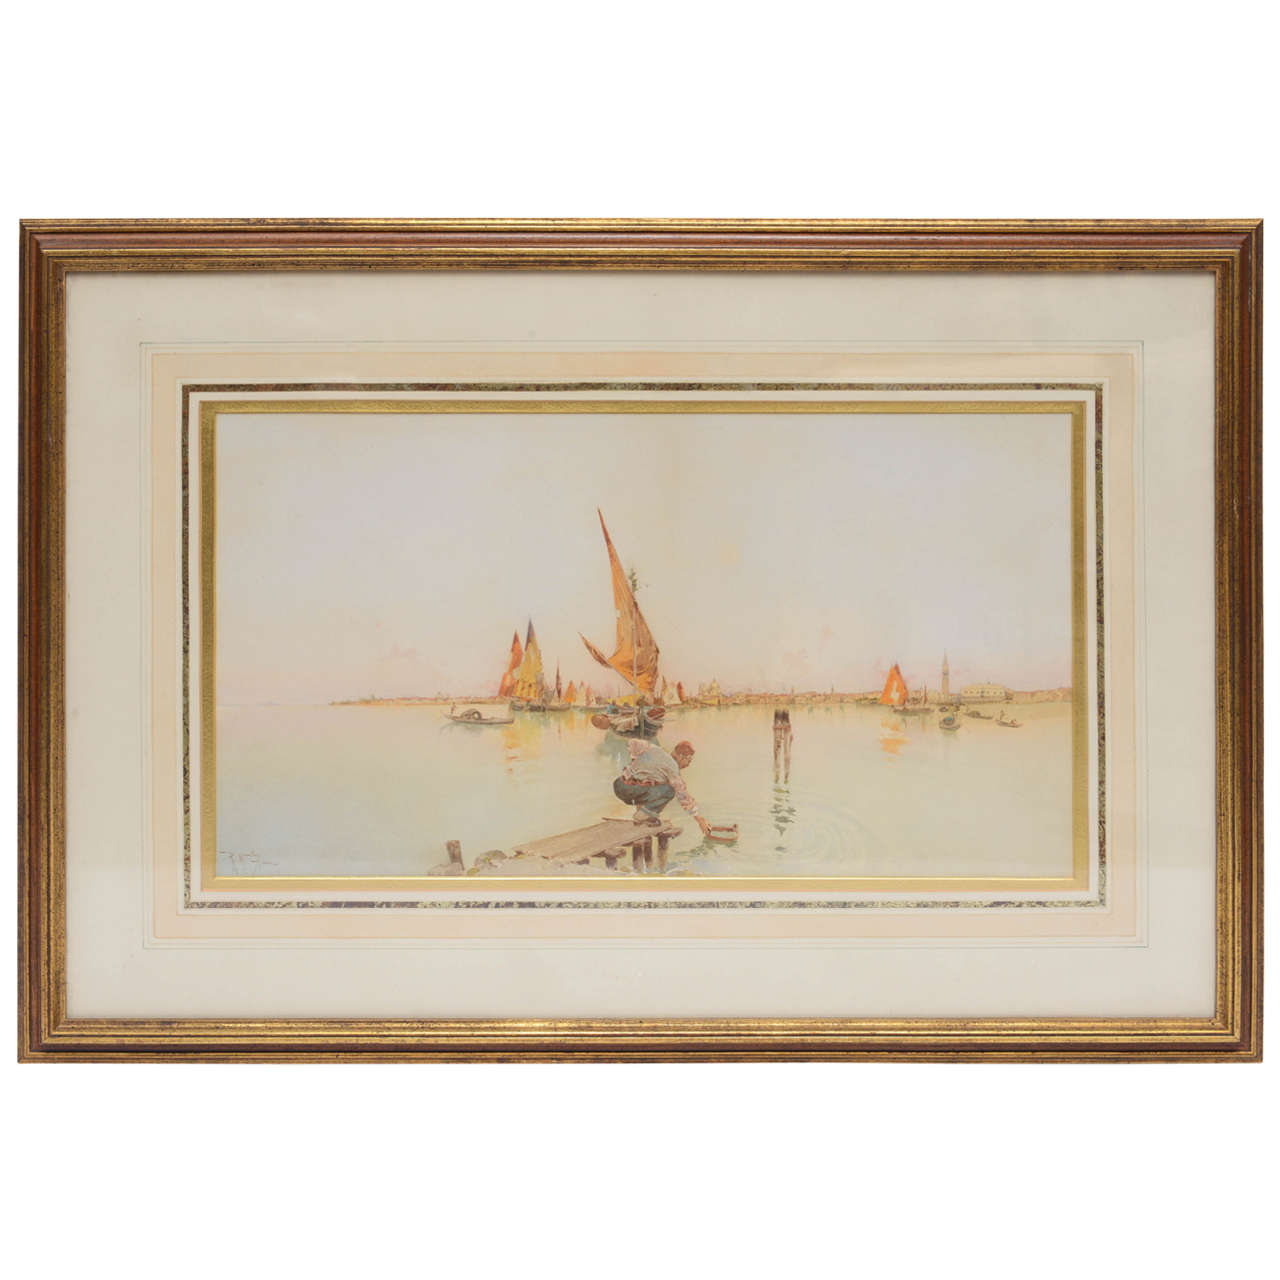 Quot Venice Quot Watercolor By Raffaele Mainella At 1stdibs